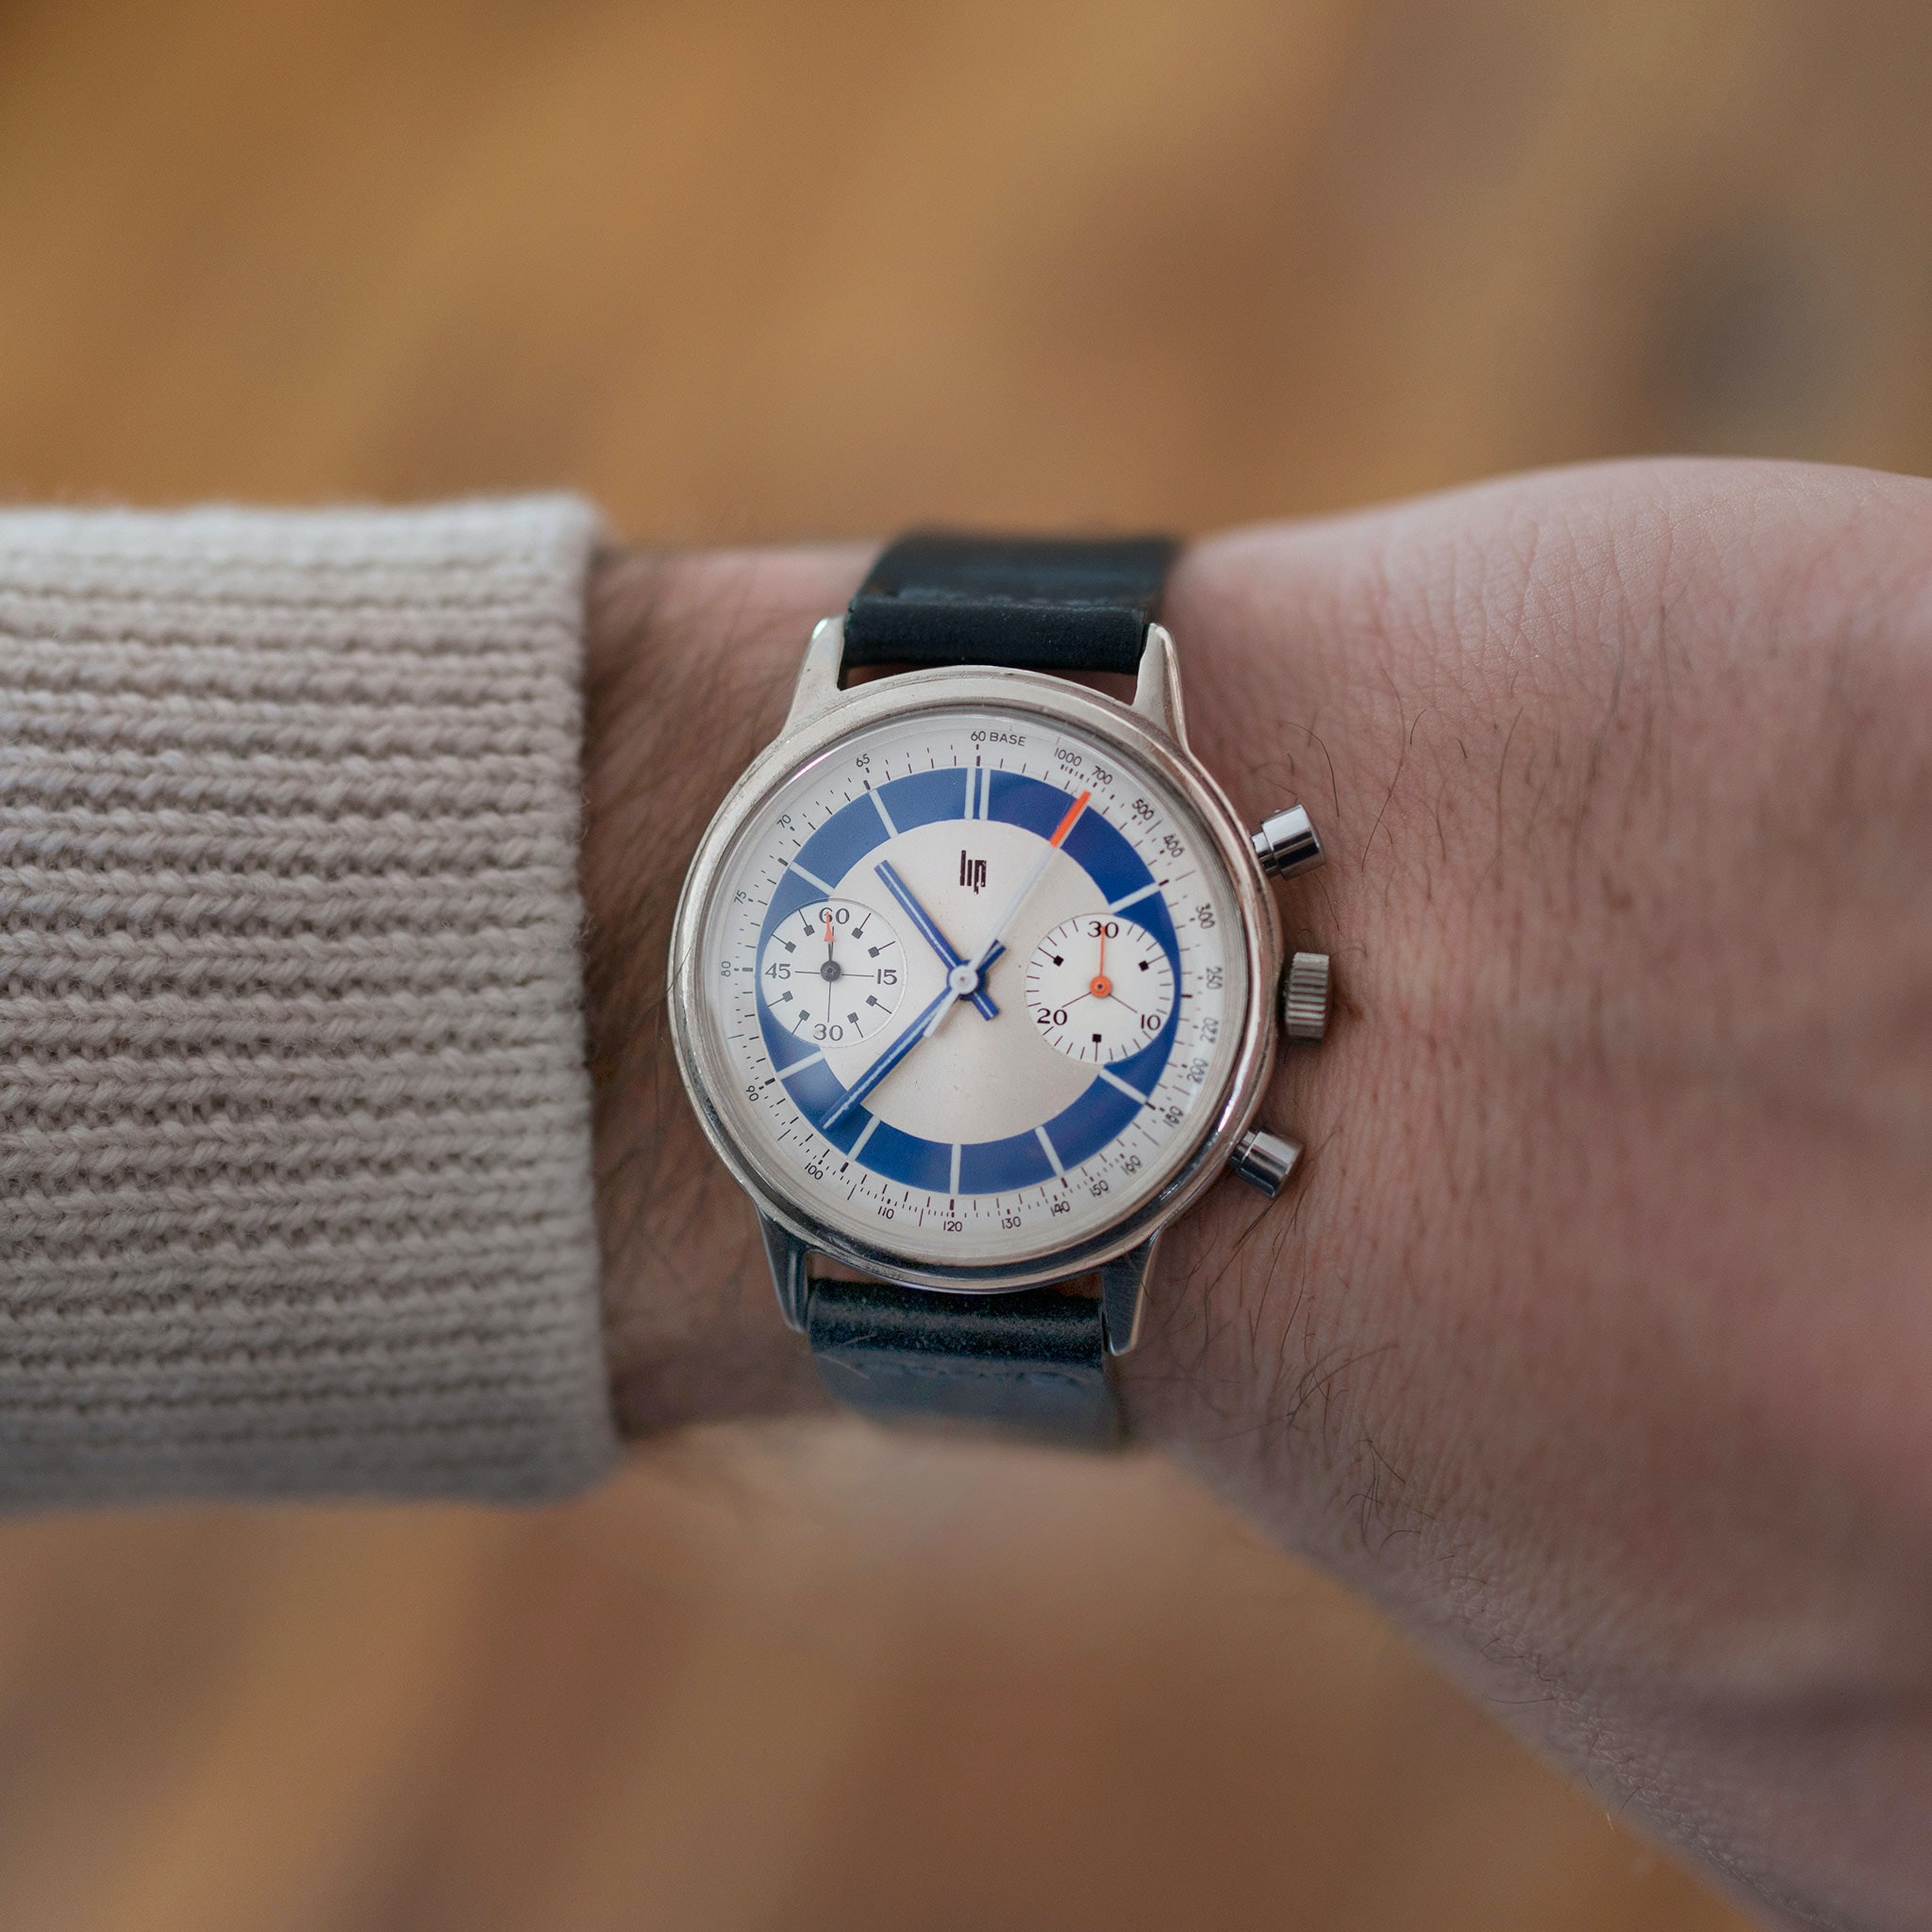 The Watch I Wore The Most In 2016, By Members Of The HODINKEE Team The Watch I Wore The Most In 2016, By Members Of The HODINKEE Team VIntage Lip Wristshot